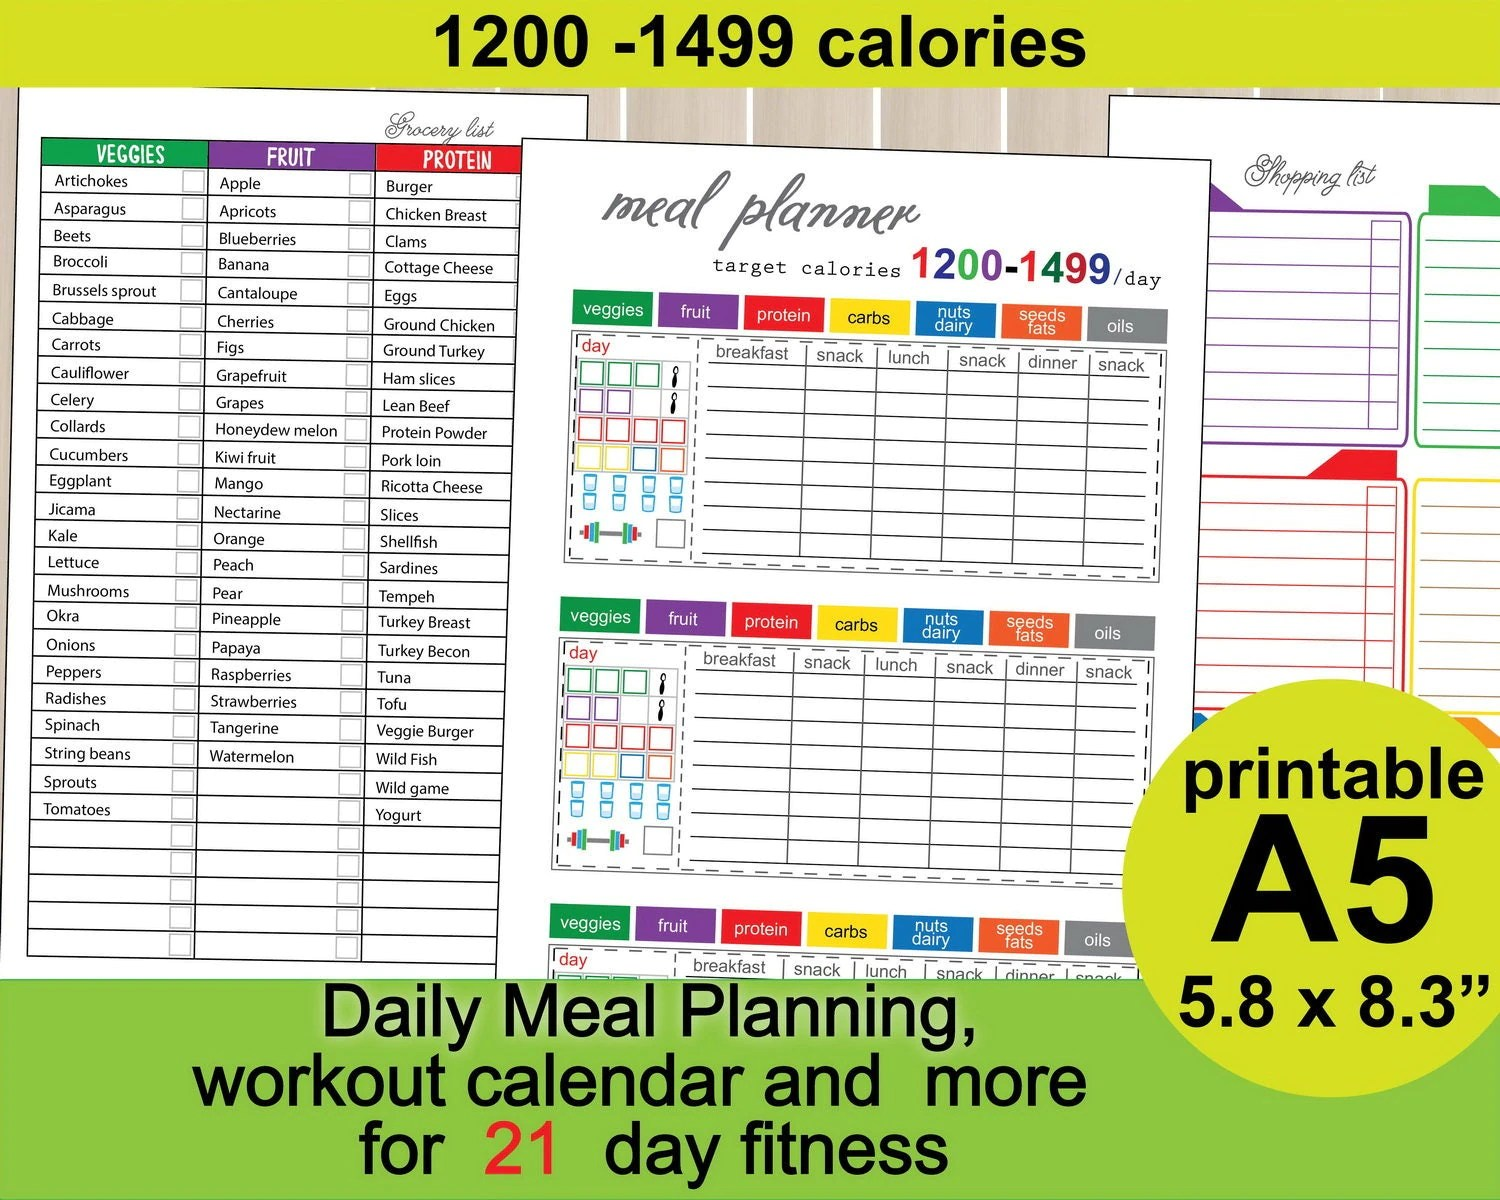 21 Day Fitness Calories Tracker A5 Meal Planner